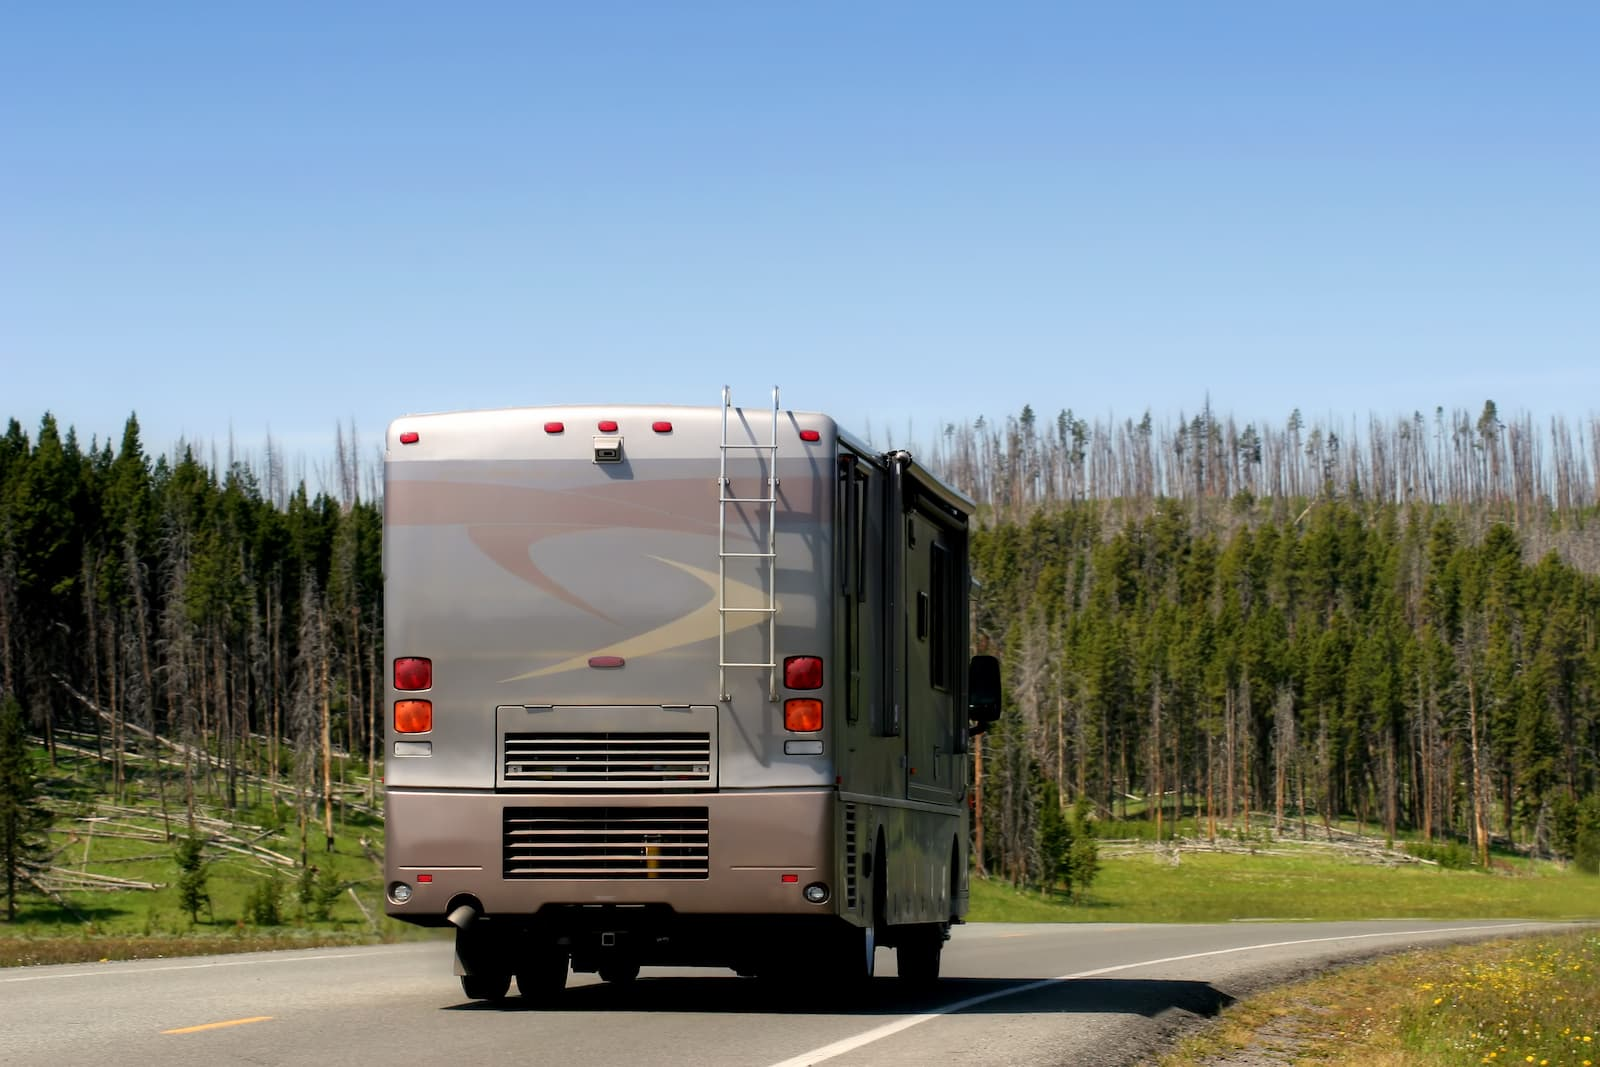 12 Simple Tips for Driving Large RVs [Videos & Infographic]